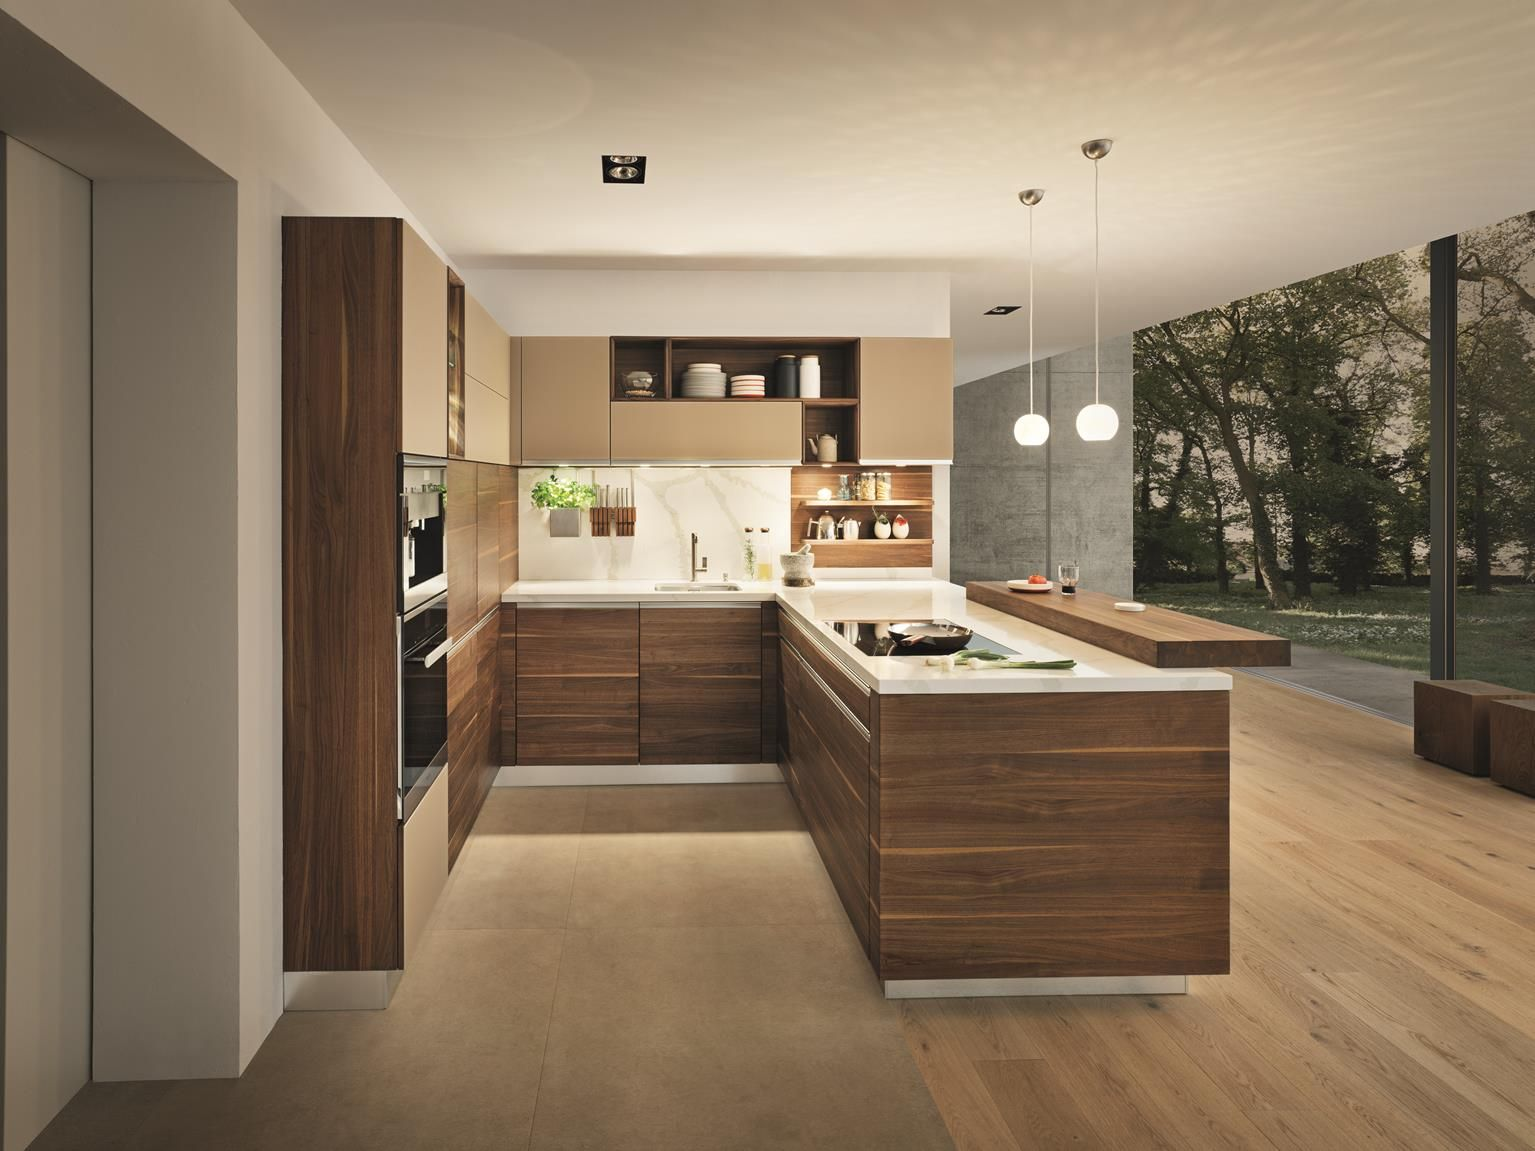 Pinsarah Babucke On Küchen  Pinterest Adorable Timber Kitchen Designs Inspiration